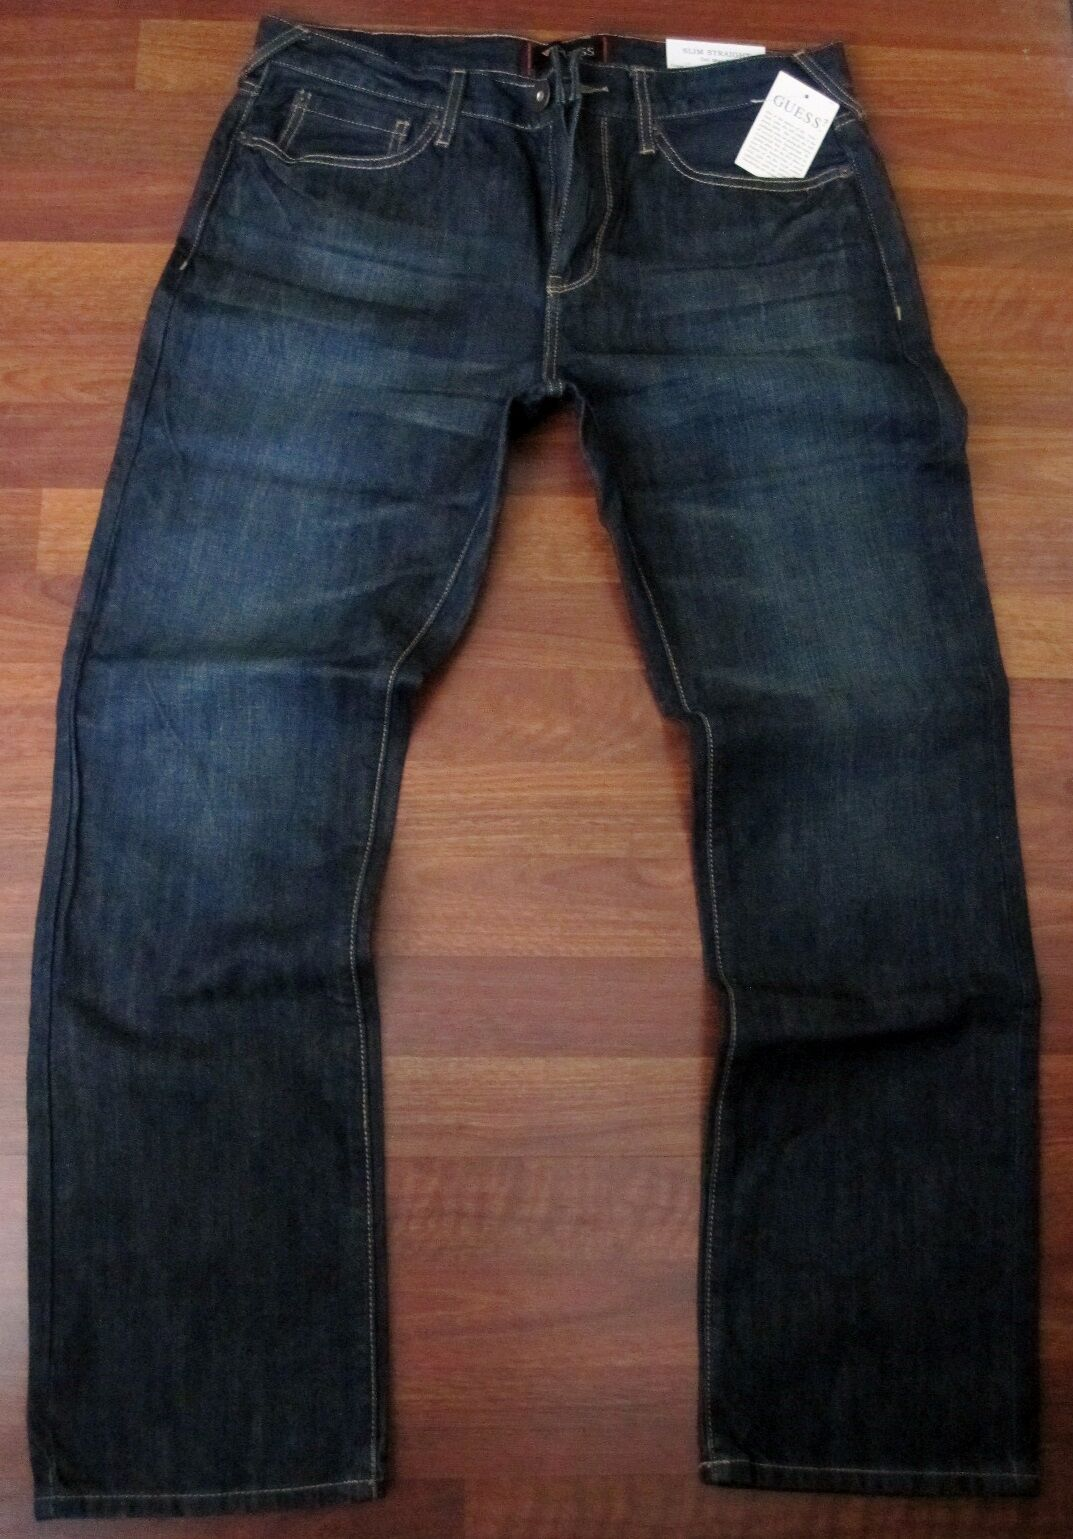 Guess Slim Straight Leg Jeans Mens Size 38 X 32 Sexy Dark Distressed Wash - NEW